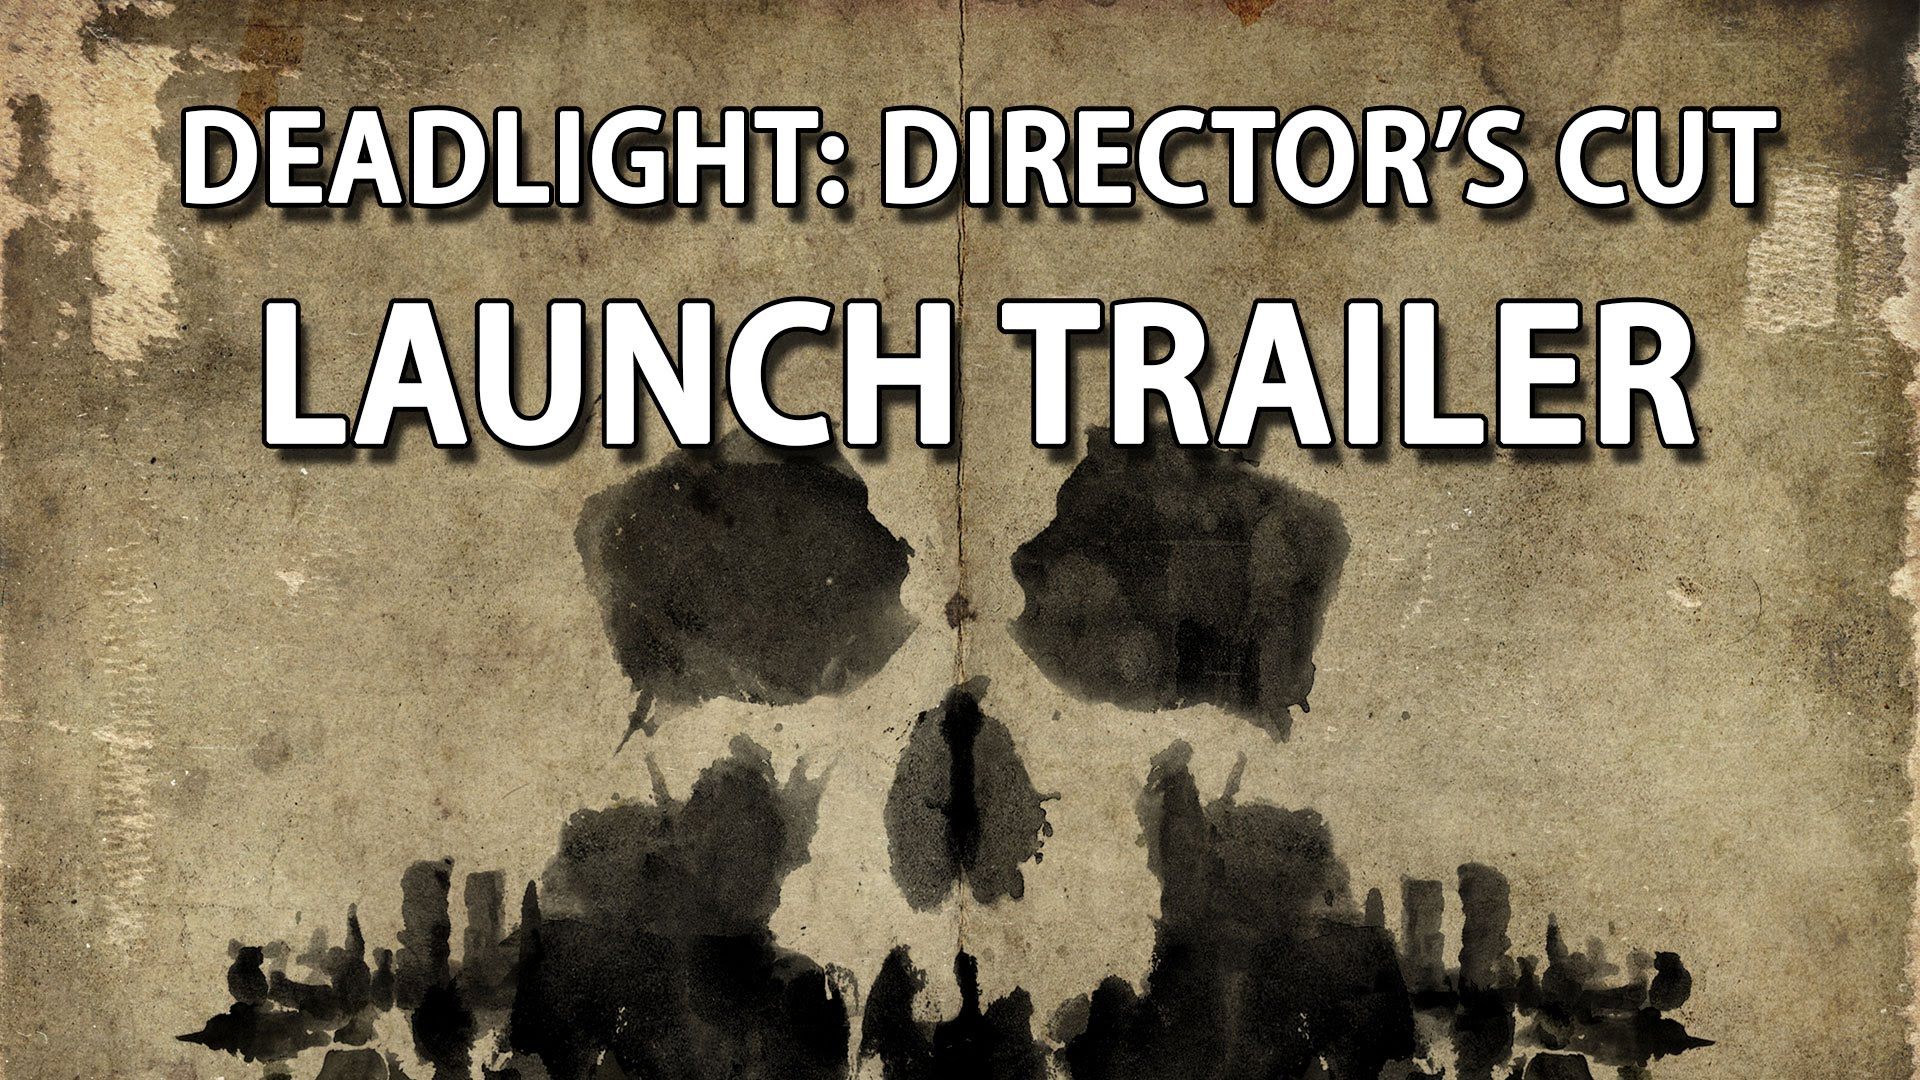 Deadlight: Director's Cut Launch Trailer